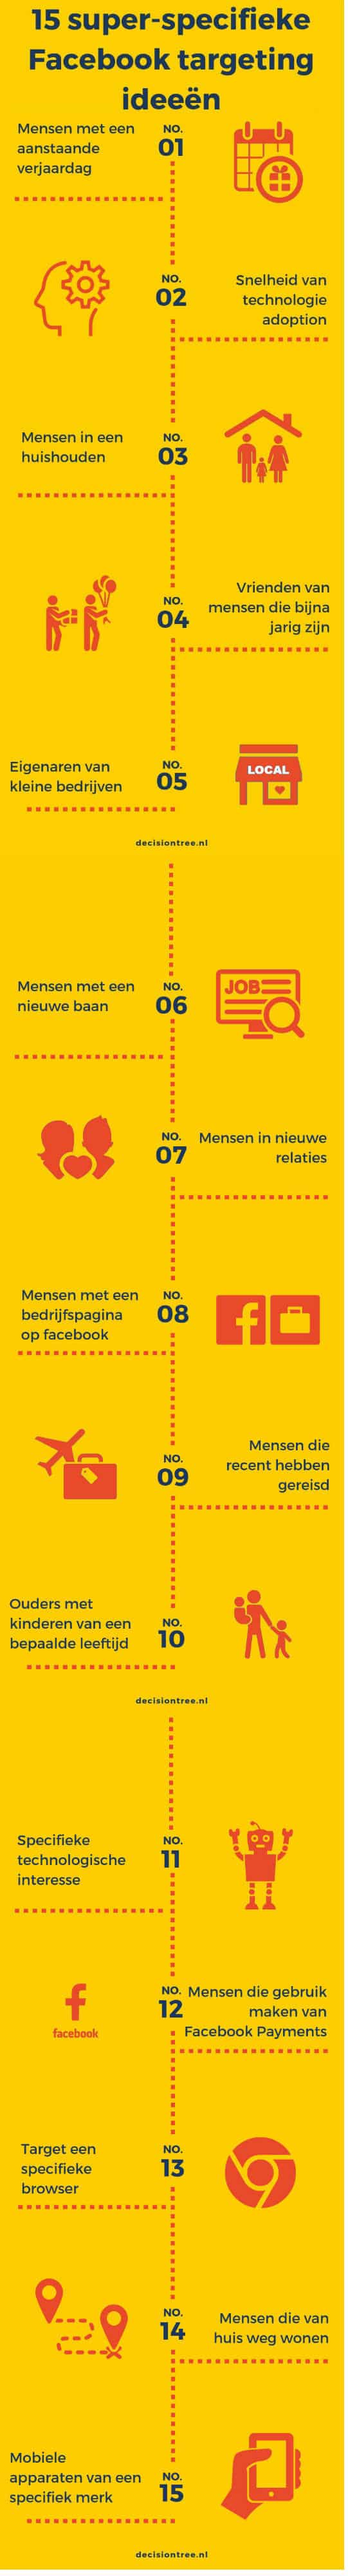 specifieke facebook targeting methoden